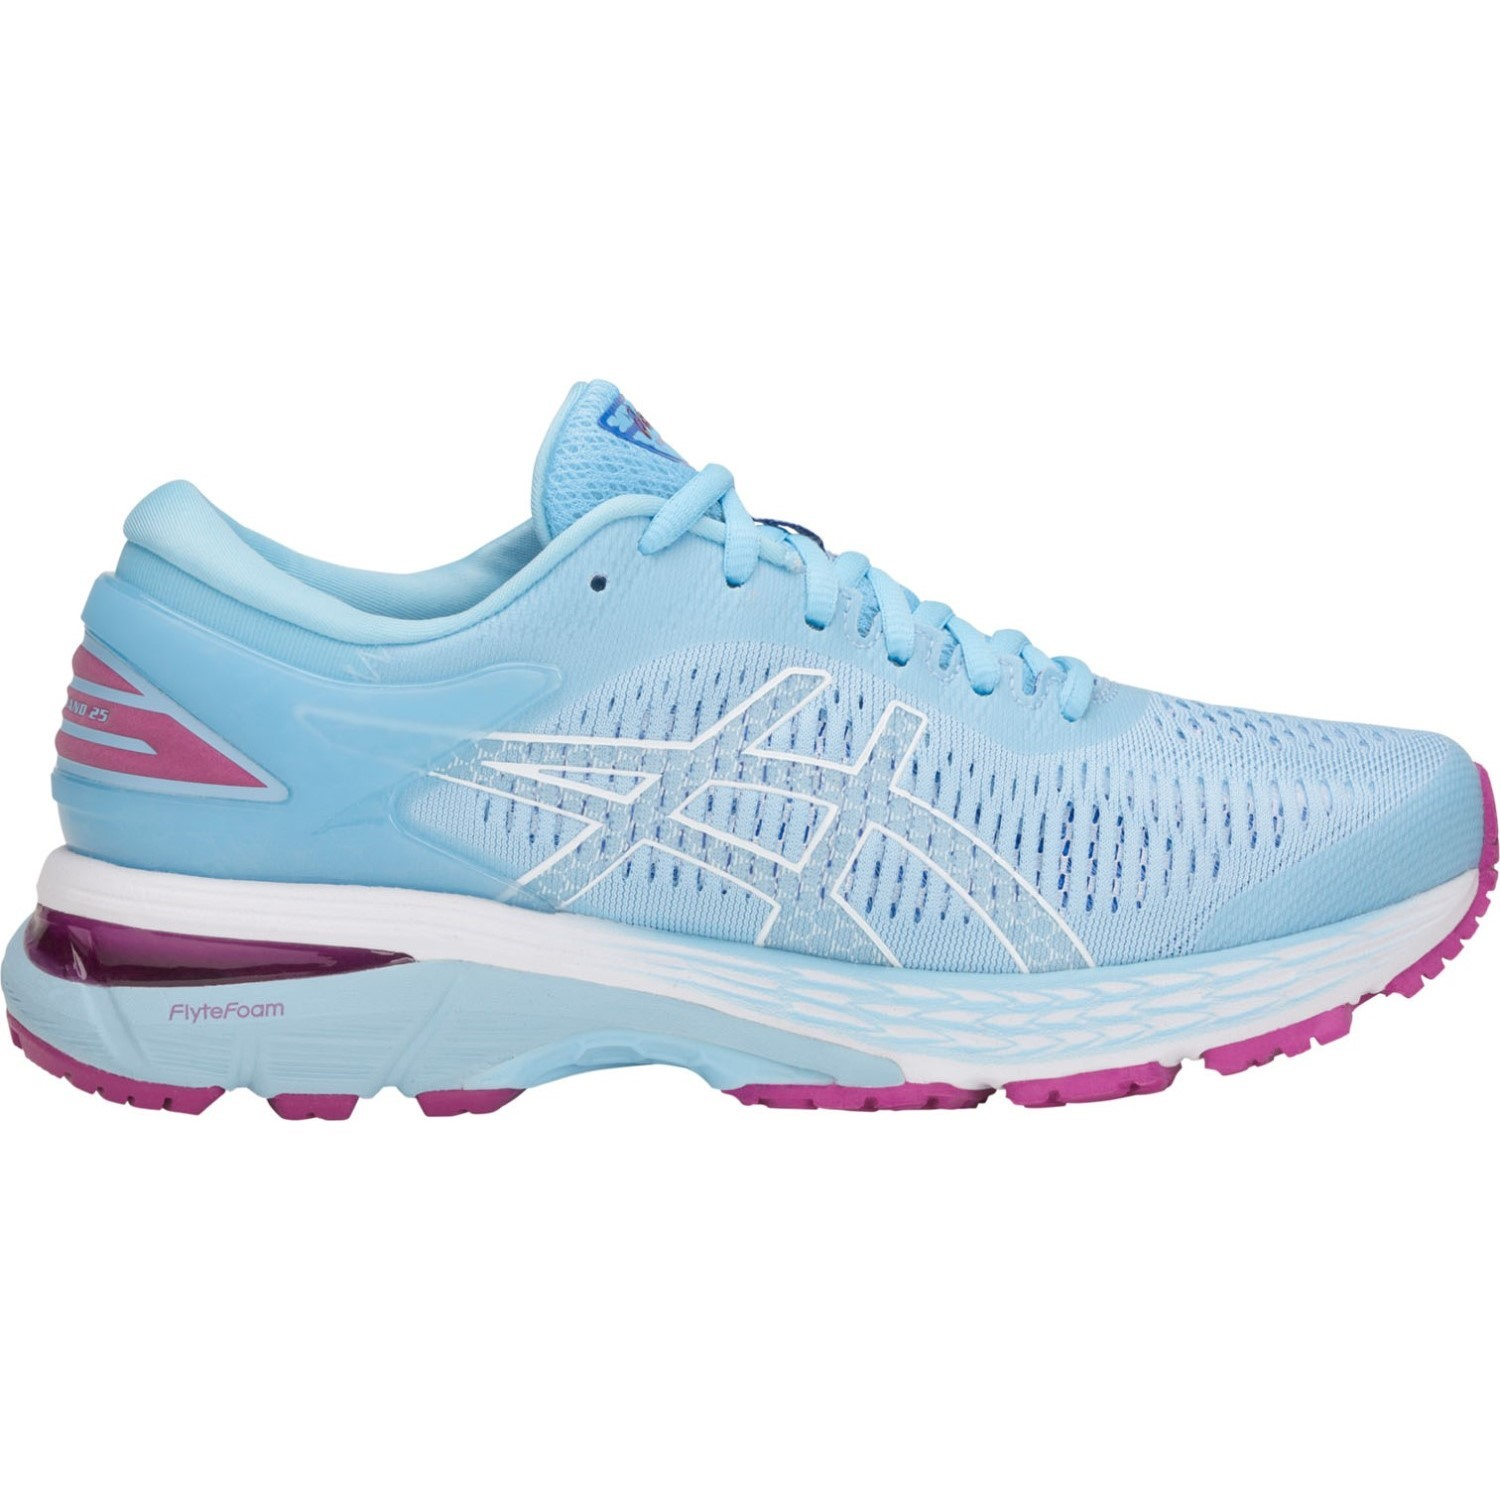 low priced 0487c 8fecb Asics Gel Kayano 25 - Womens Running Shoes